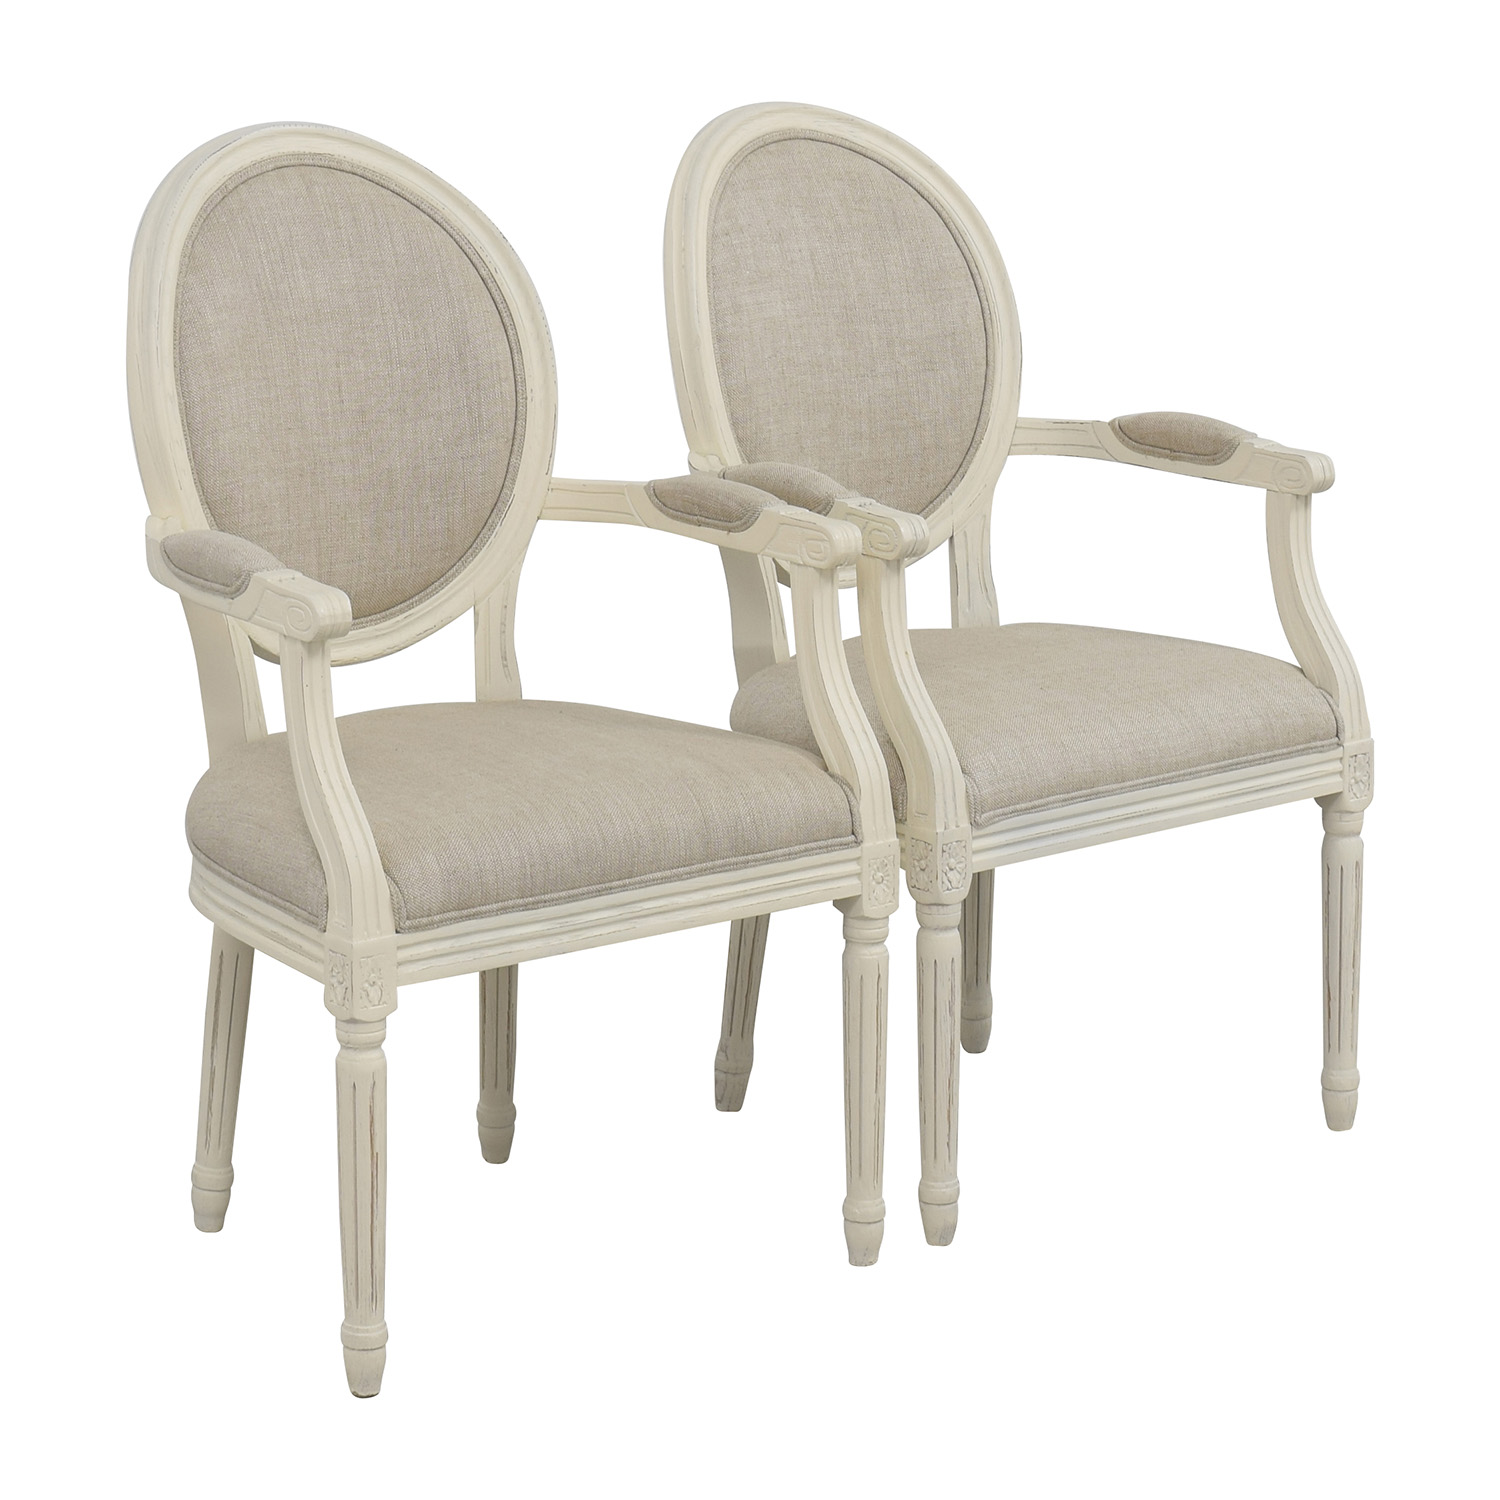 ... Restoration Hardware Restoration Hardware Beige French Chairs Coupon ... Part 60